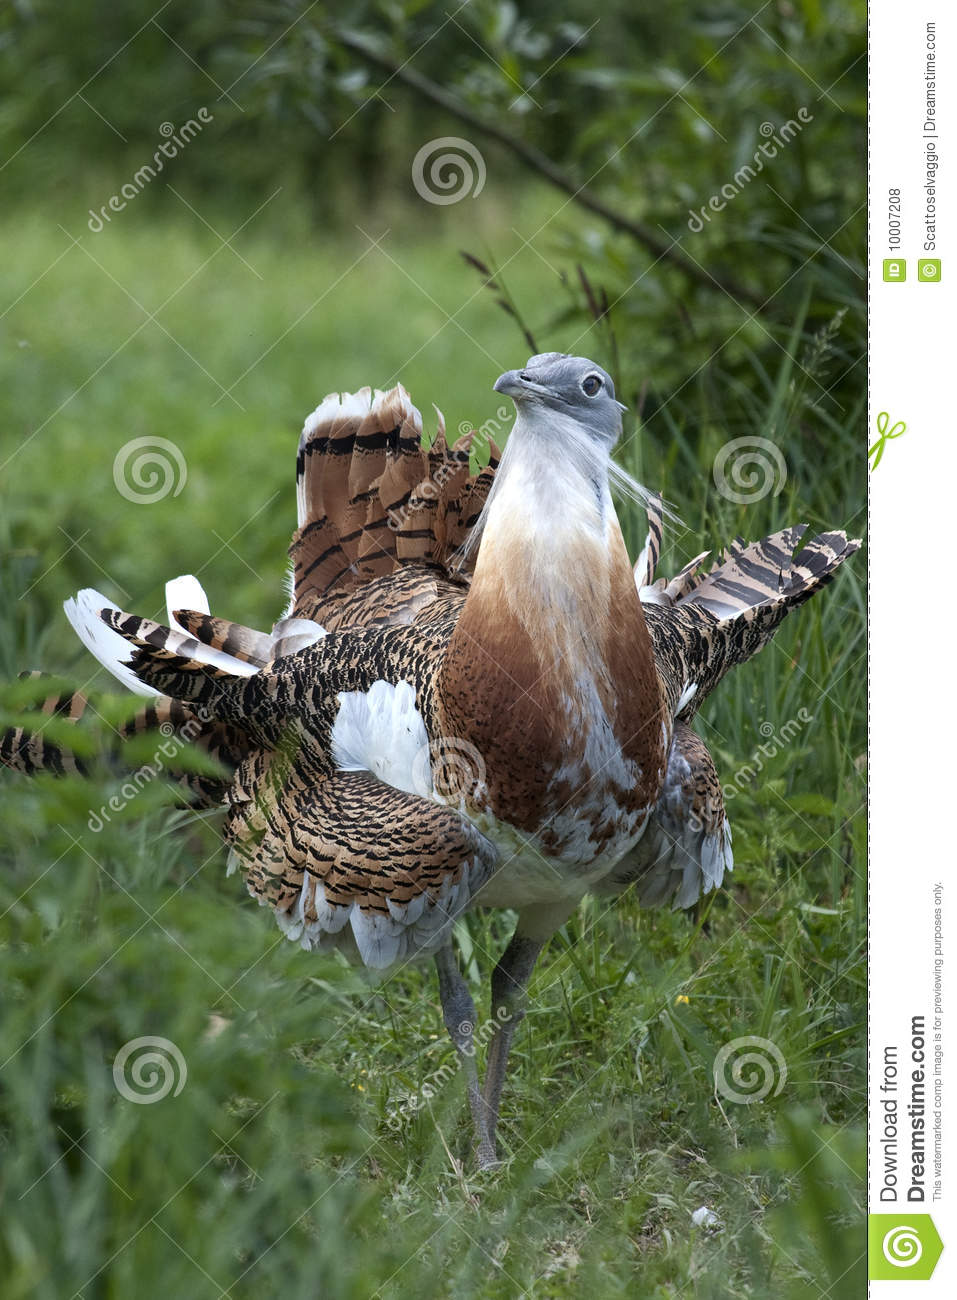 Male Great Bustard (Otis tarda) showing his flamboyant plumage before mating. A single male may mate with up to 5 females. It is a national bird of Hungary (túzok).